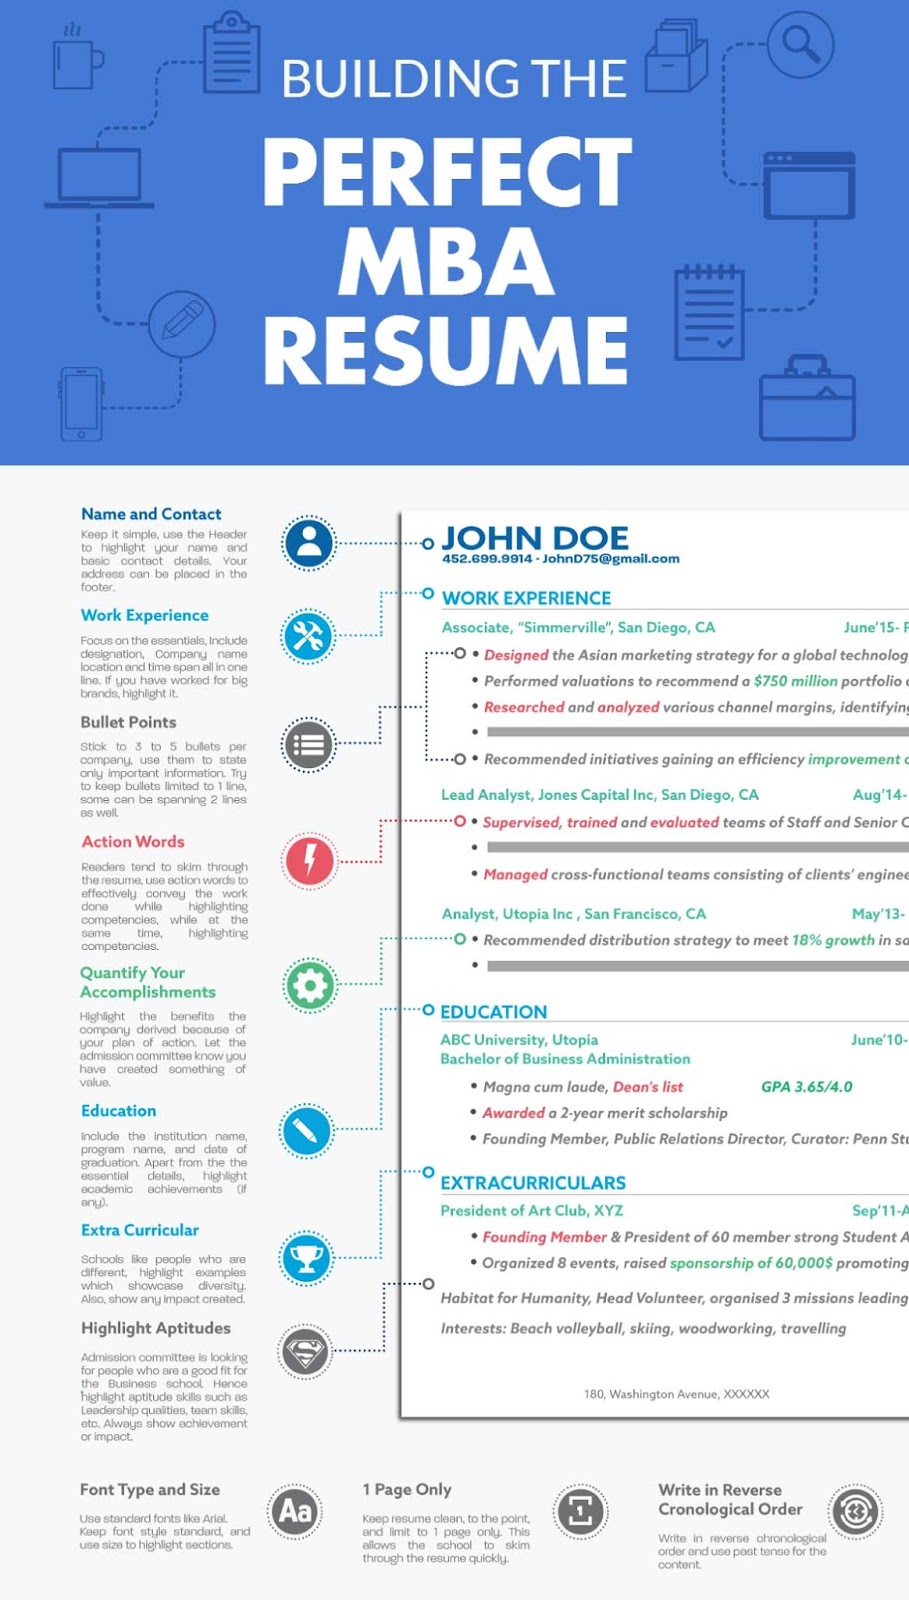 10 steps towards building the Perfect MBA Resume - An Infographic